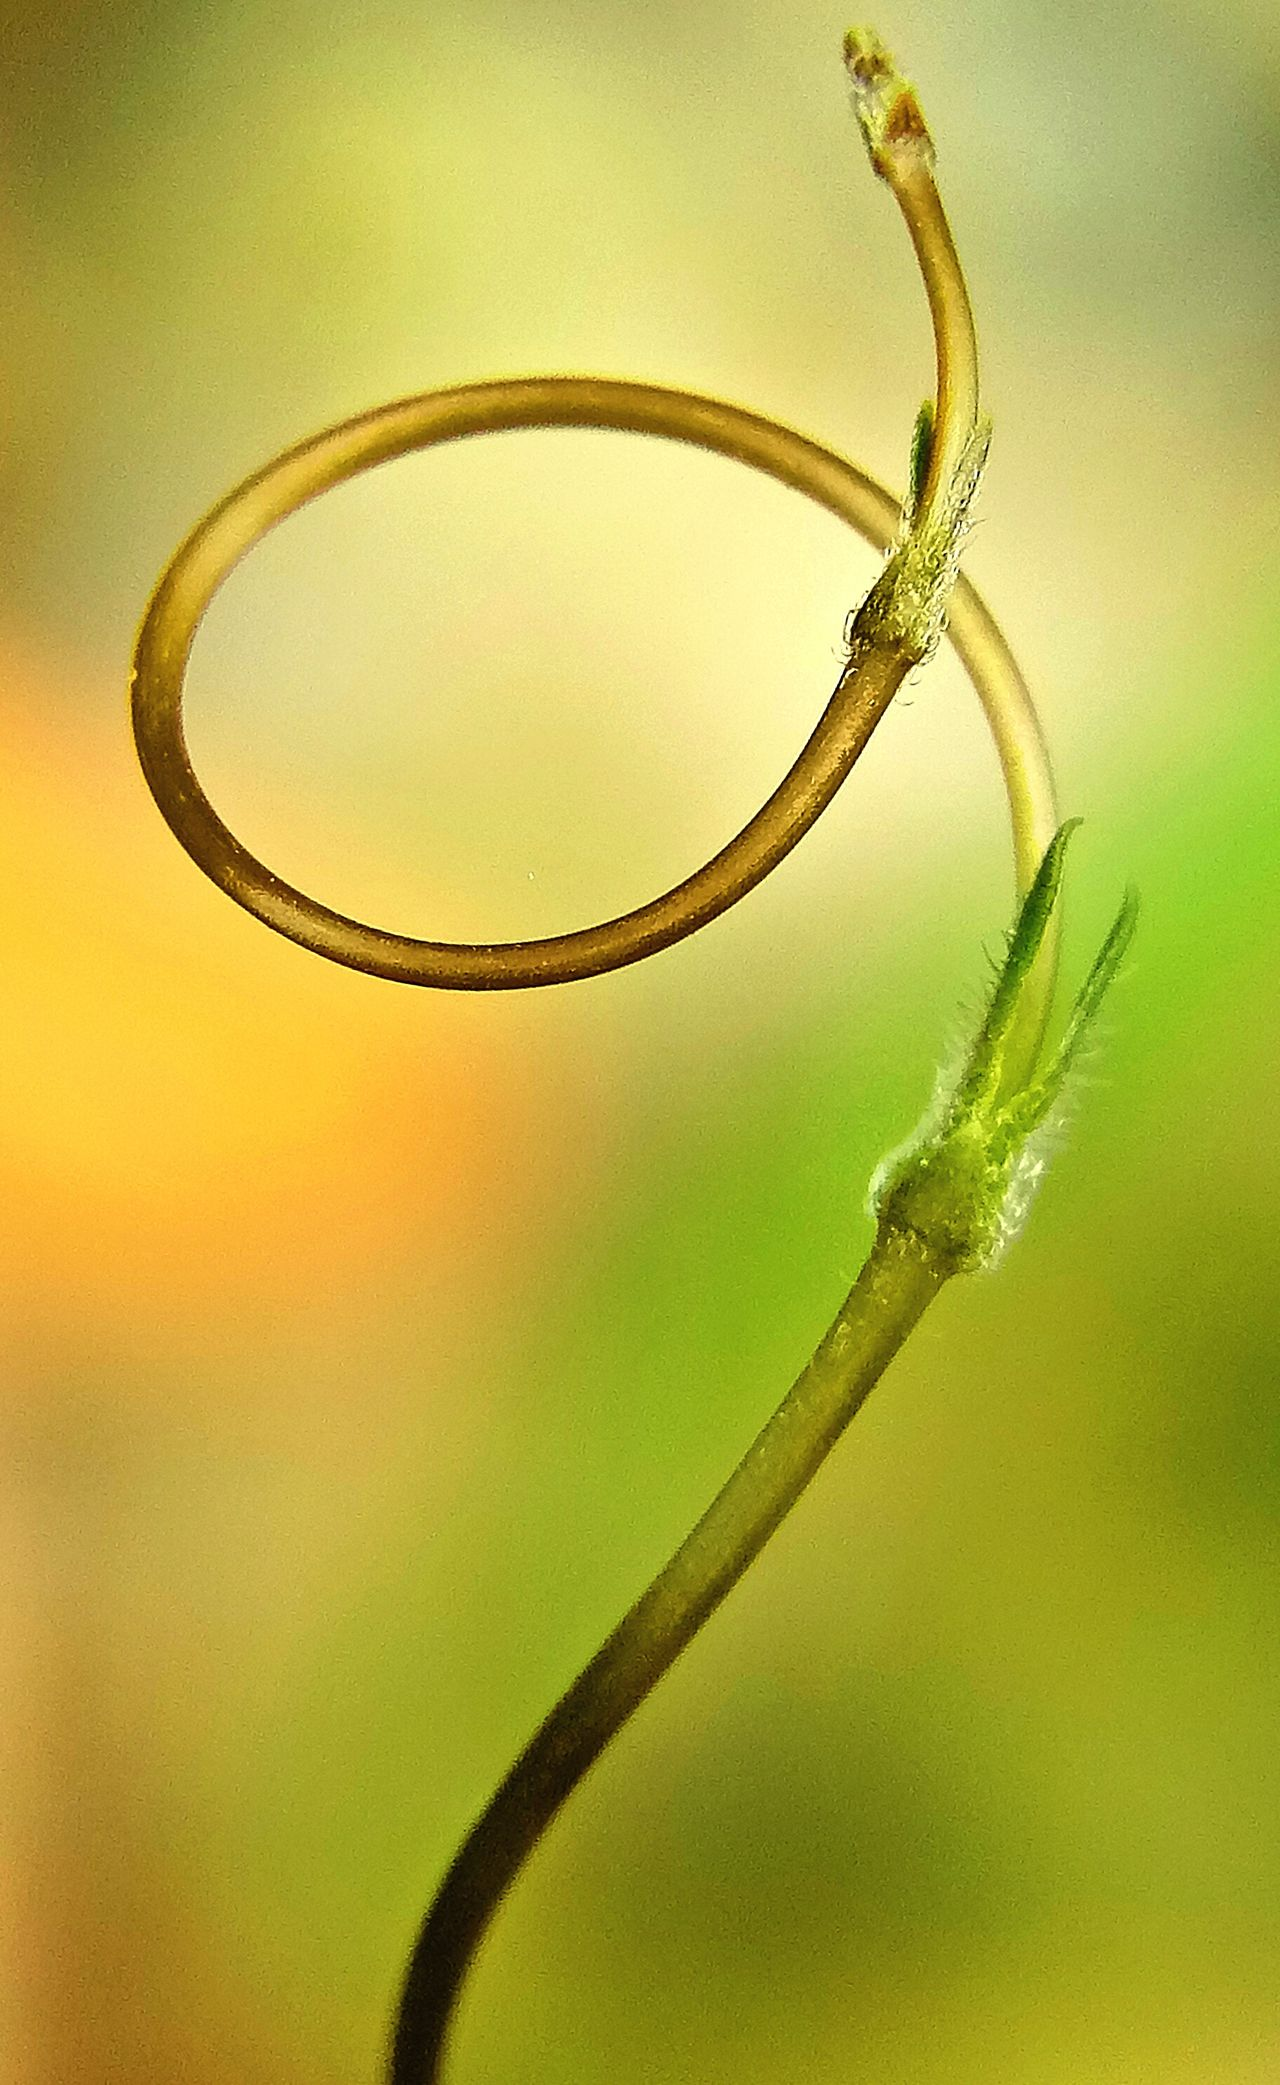 Growth nature,... Beauty In Nature Gold Colored Nature Tendril No People Outdoors Day Astrology Sign